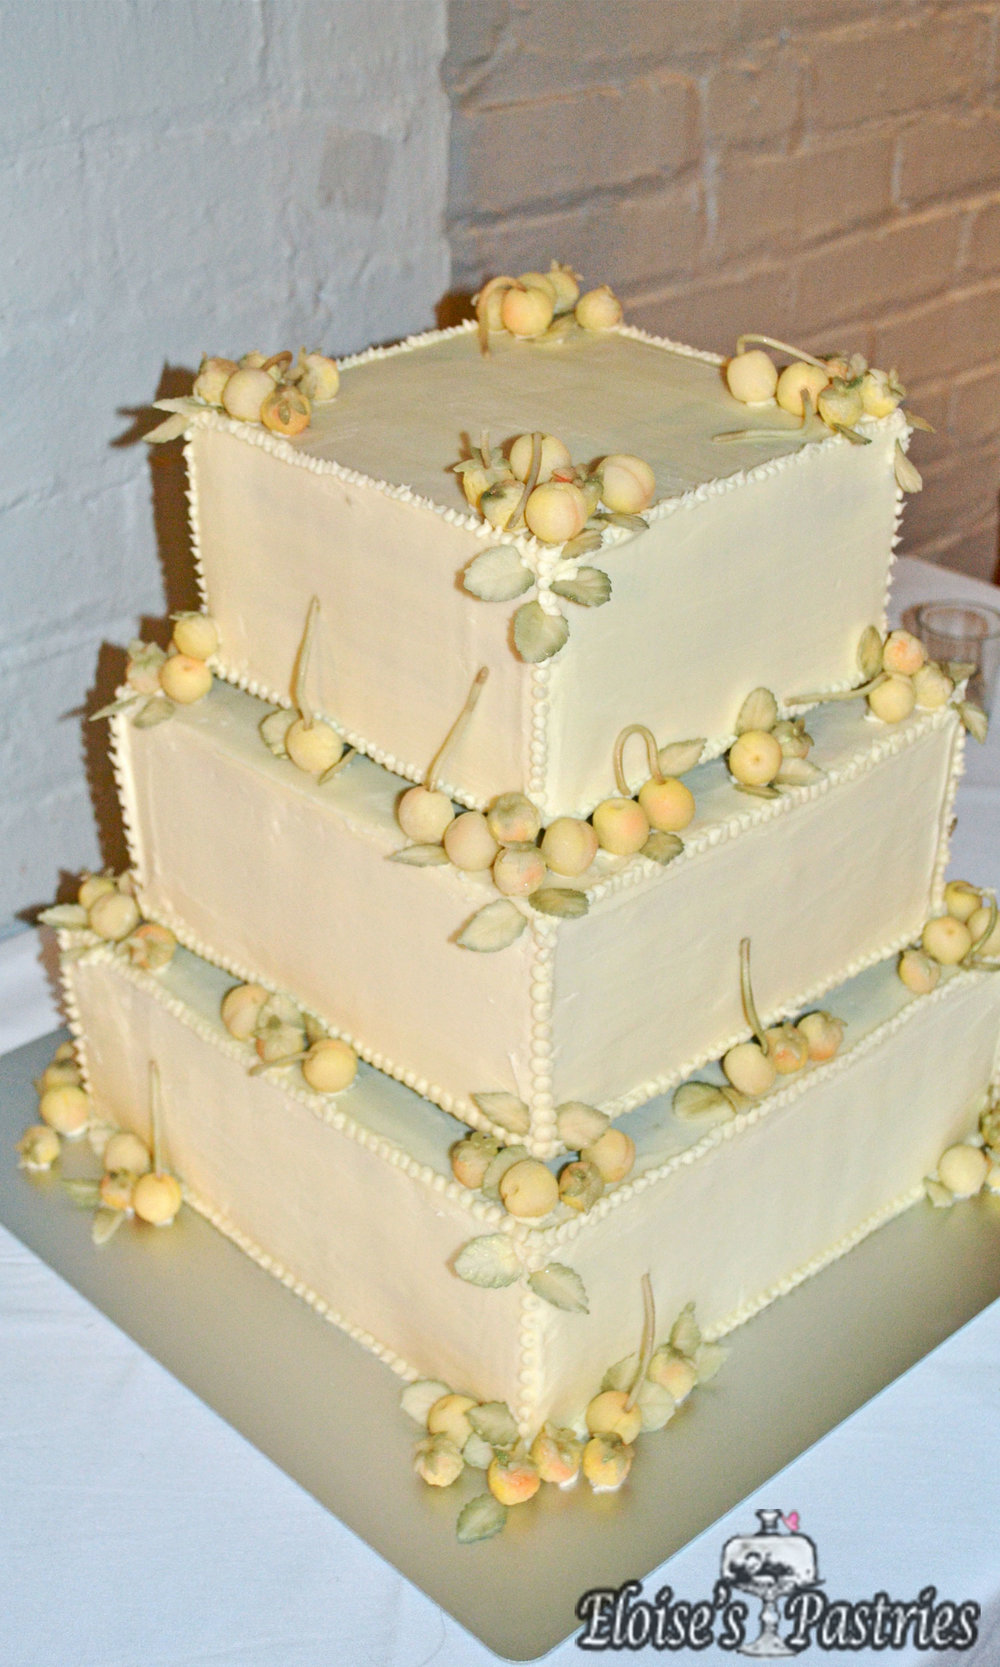 Wedding Cakes Gallery — Eloise\'s Pastries